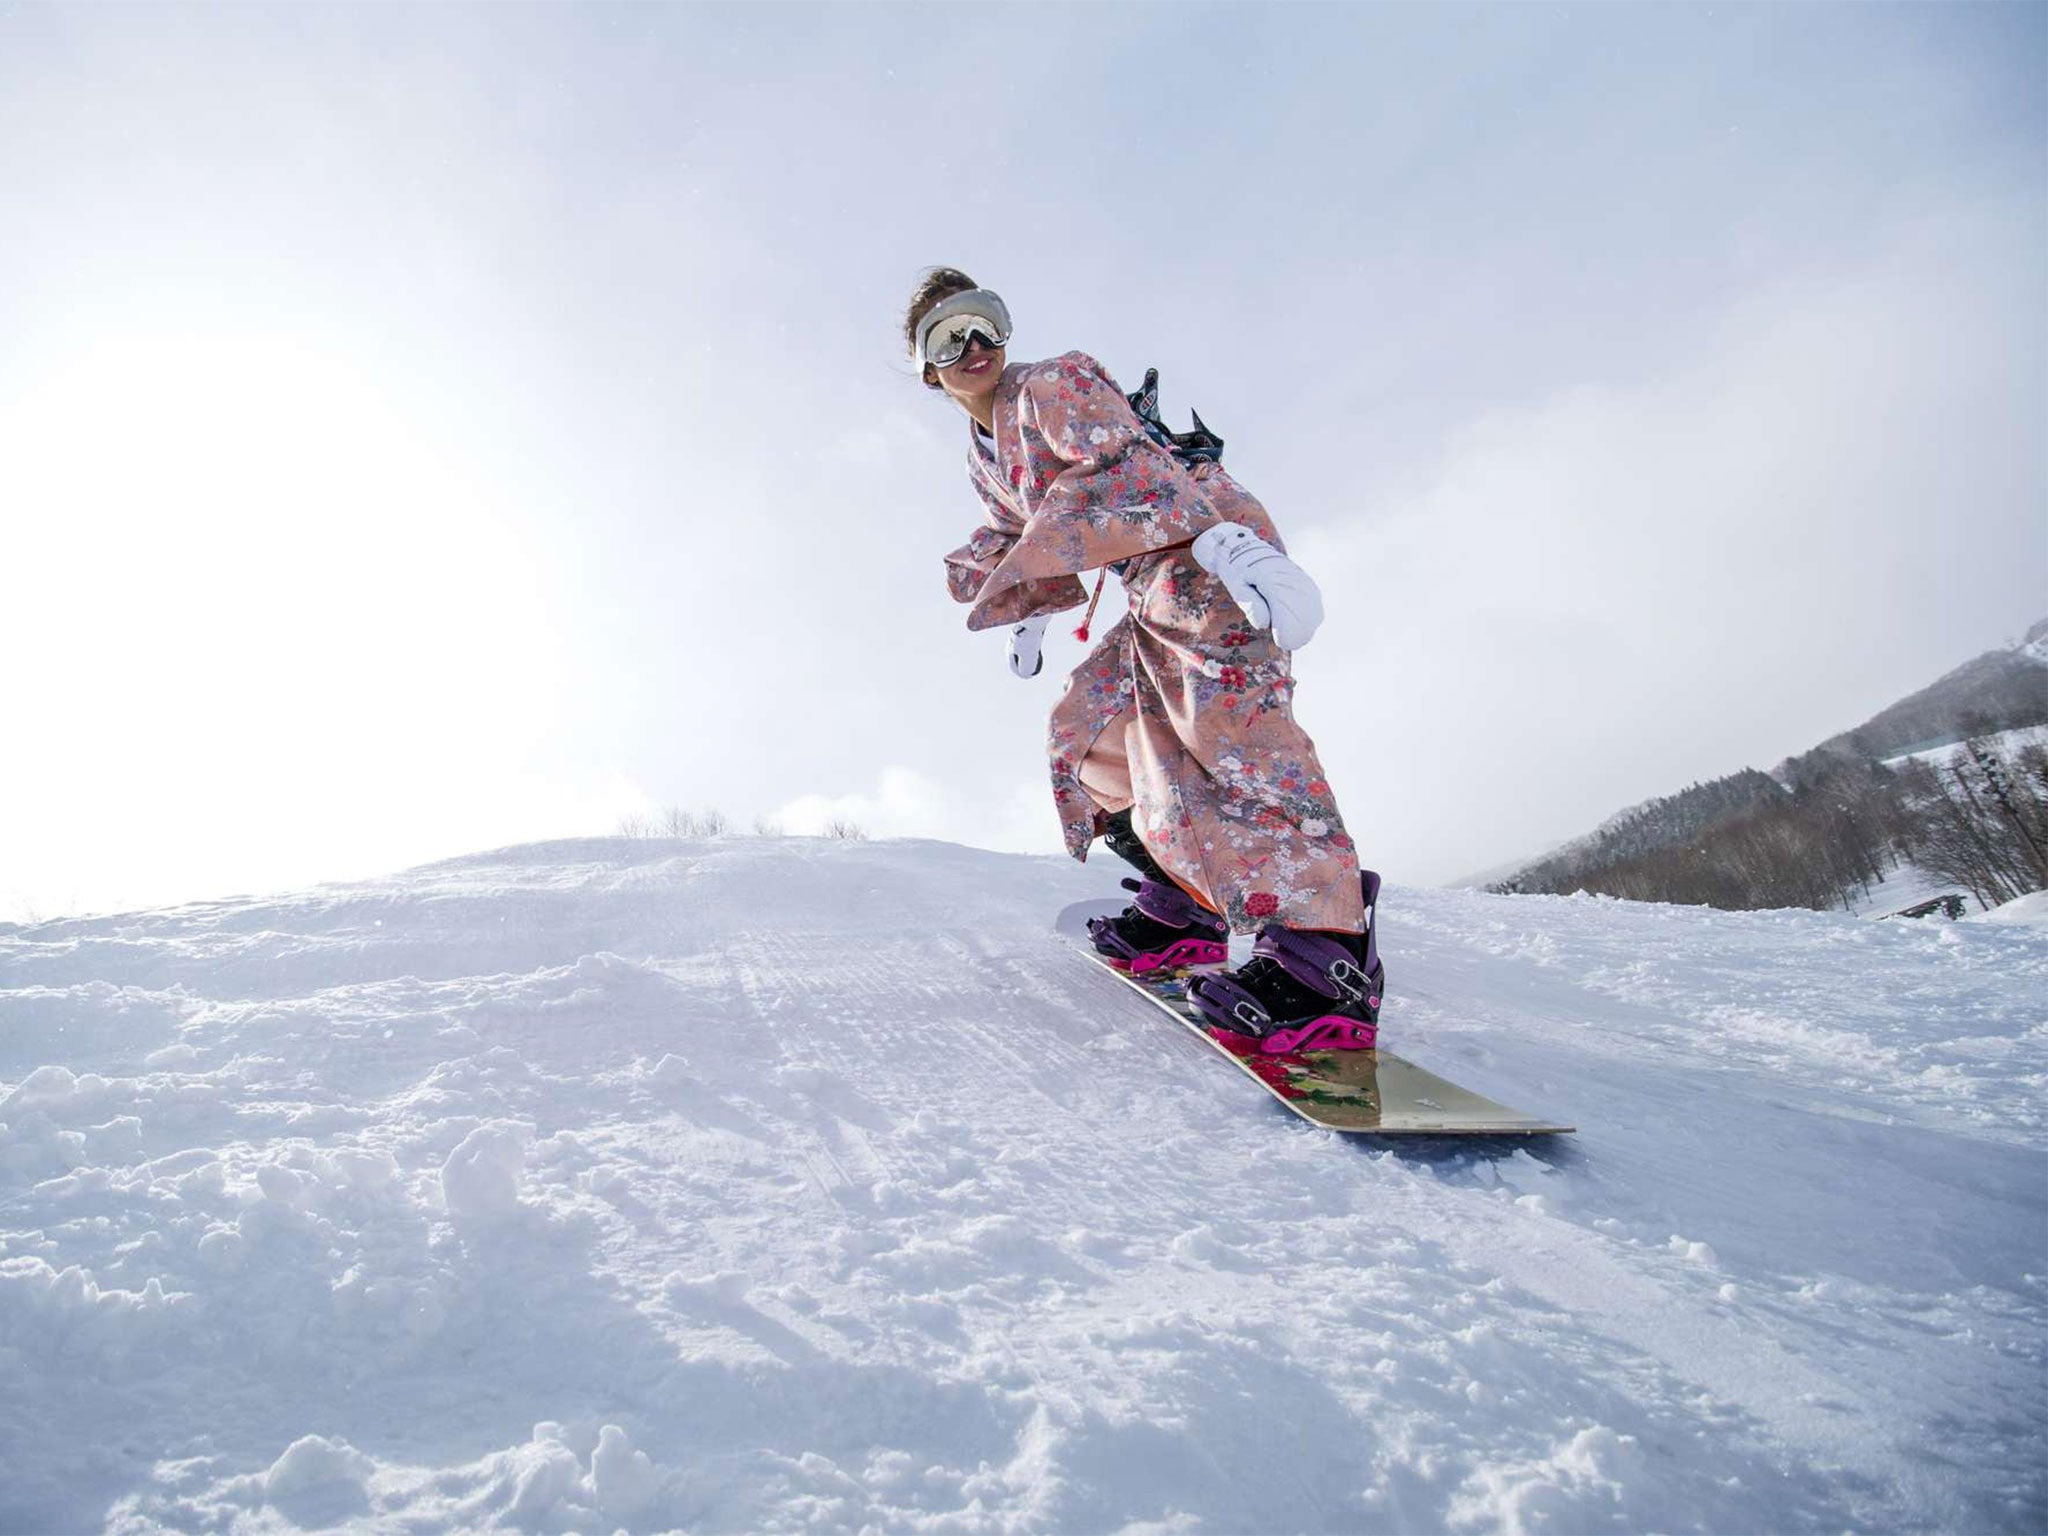 Japan's 'champagne powder' snow is taking the skiing world by storm